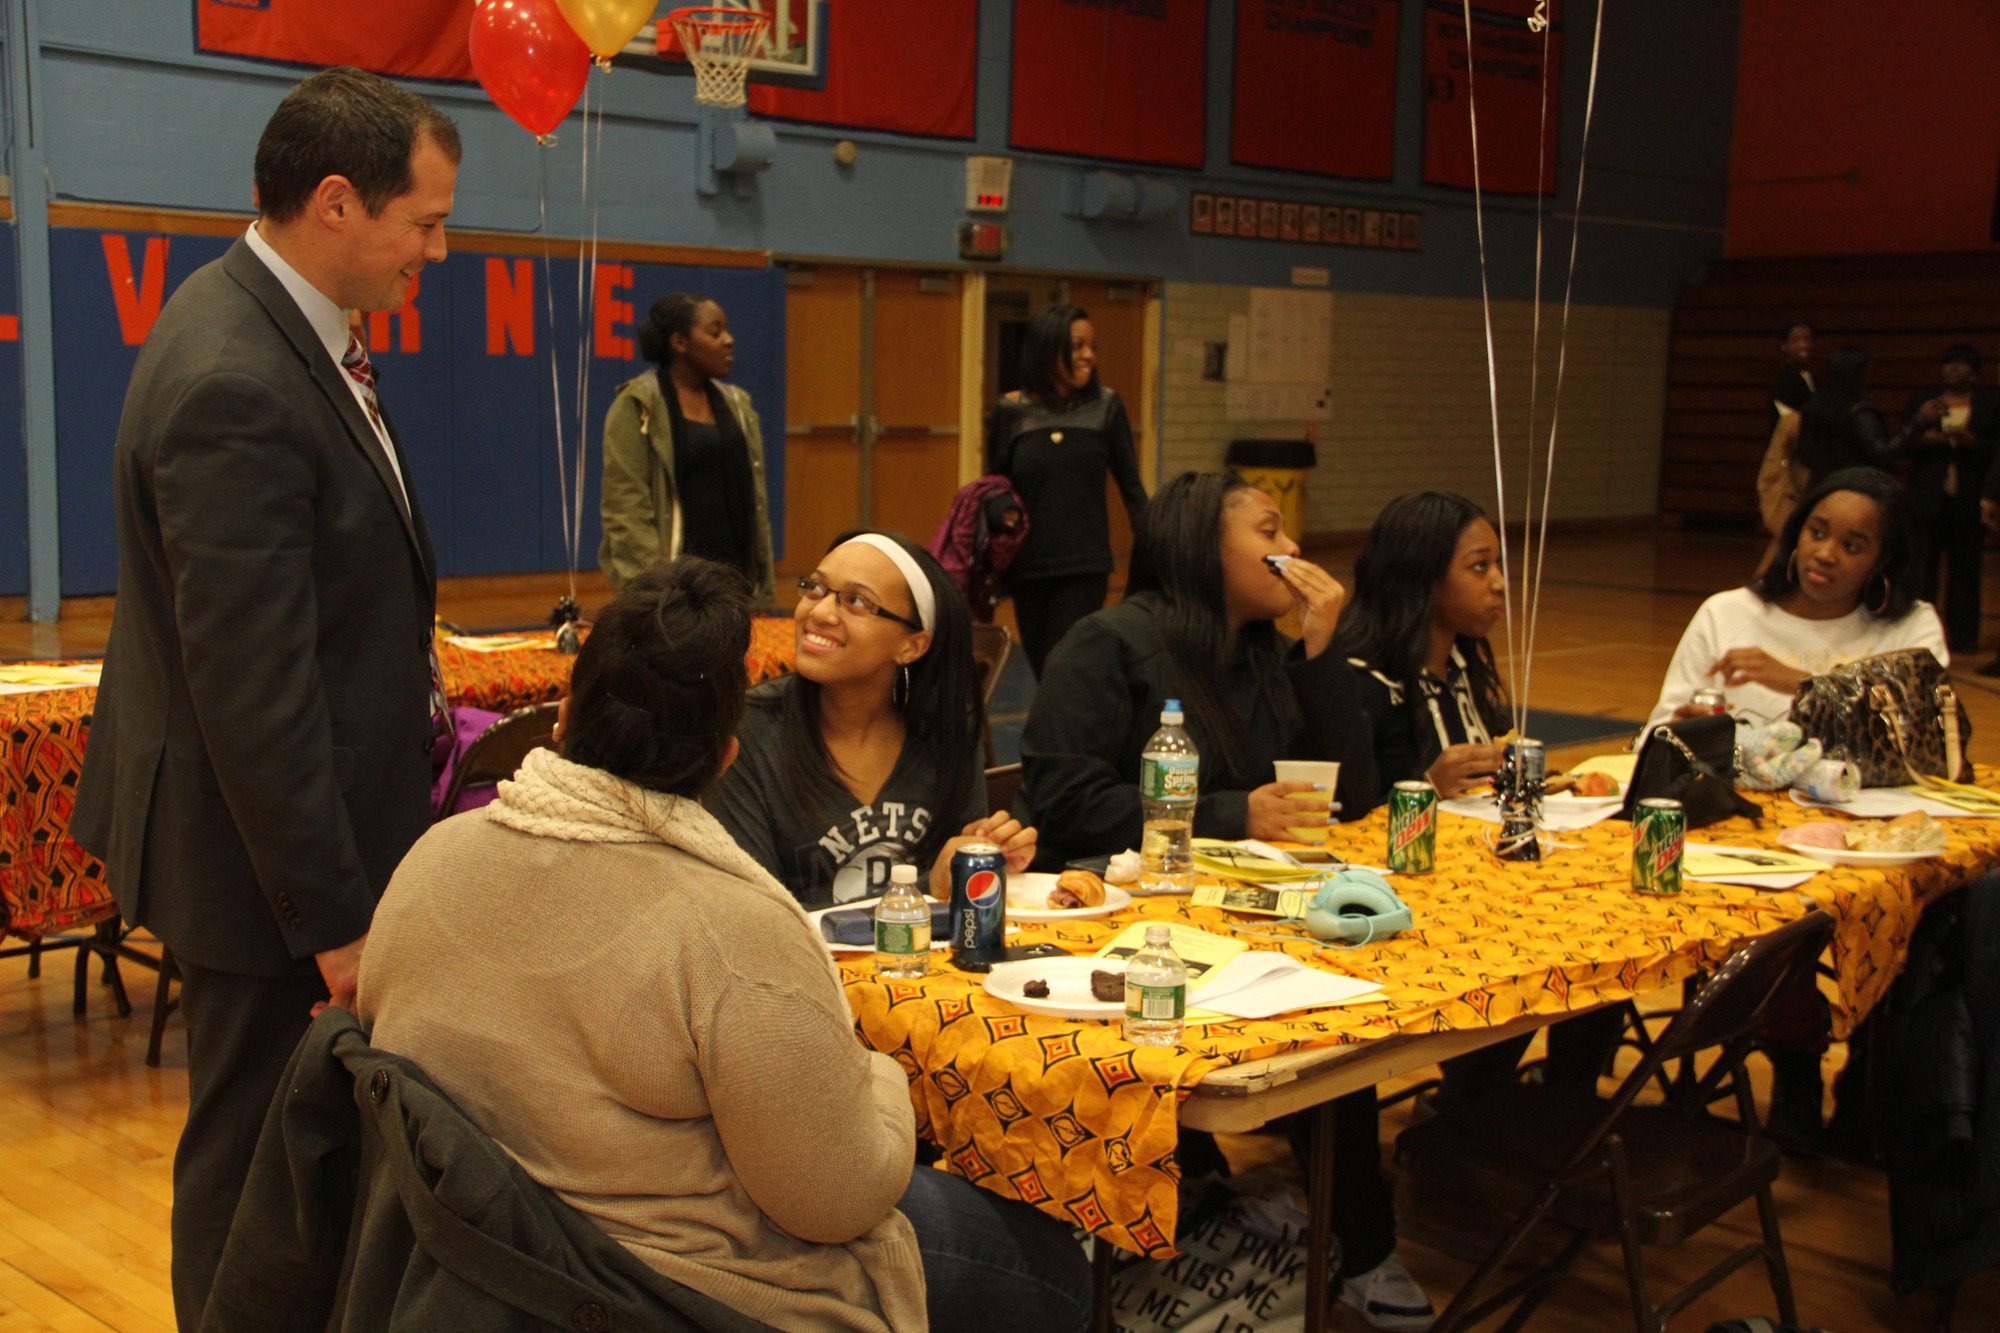 Principal Dr. Vincent Romano chatted with some Malverne High School students at this year's Black History Month celebration.